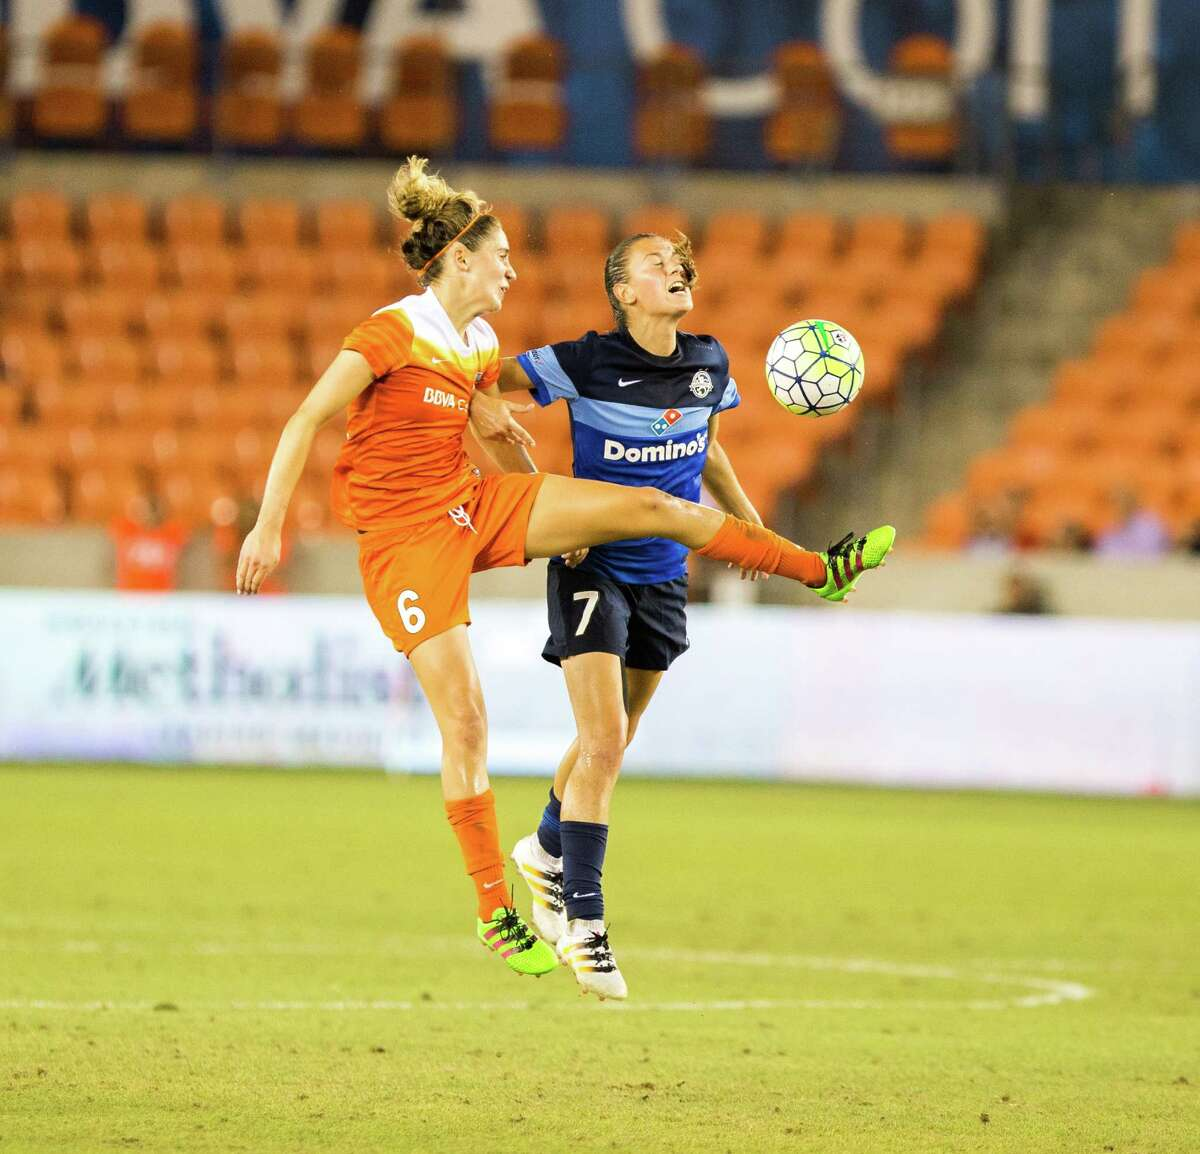 Houston Dash midfielder Morgan Brian (6) kicks the ball in front of FC Kansas City midfielder Mandy Laddish (7) during the second half of action between the Houston Dash and the FC Kansas City during a soccer game at BBVA Compass, Sunday, June 19, 2016, in Houston. FC Kansas City defeated Houston Dash 1-0. ( Juan DeLeon / for the Houston Chronicle )